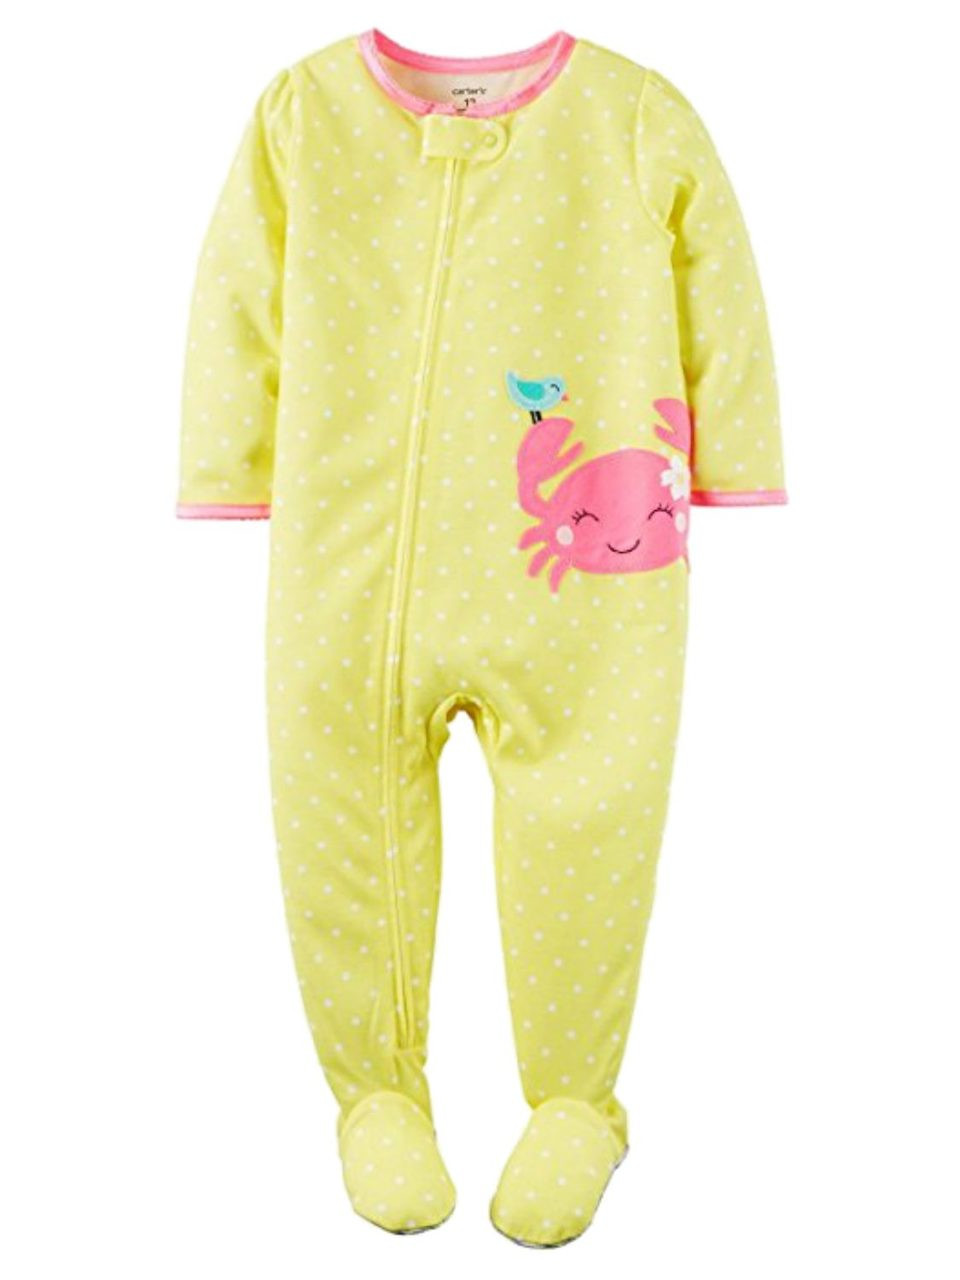 Carters Toddler Girls Lightweight Snowman Sleeper Footie Pajama Sleep /& Play